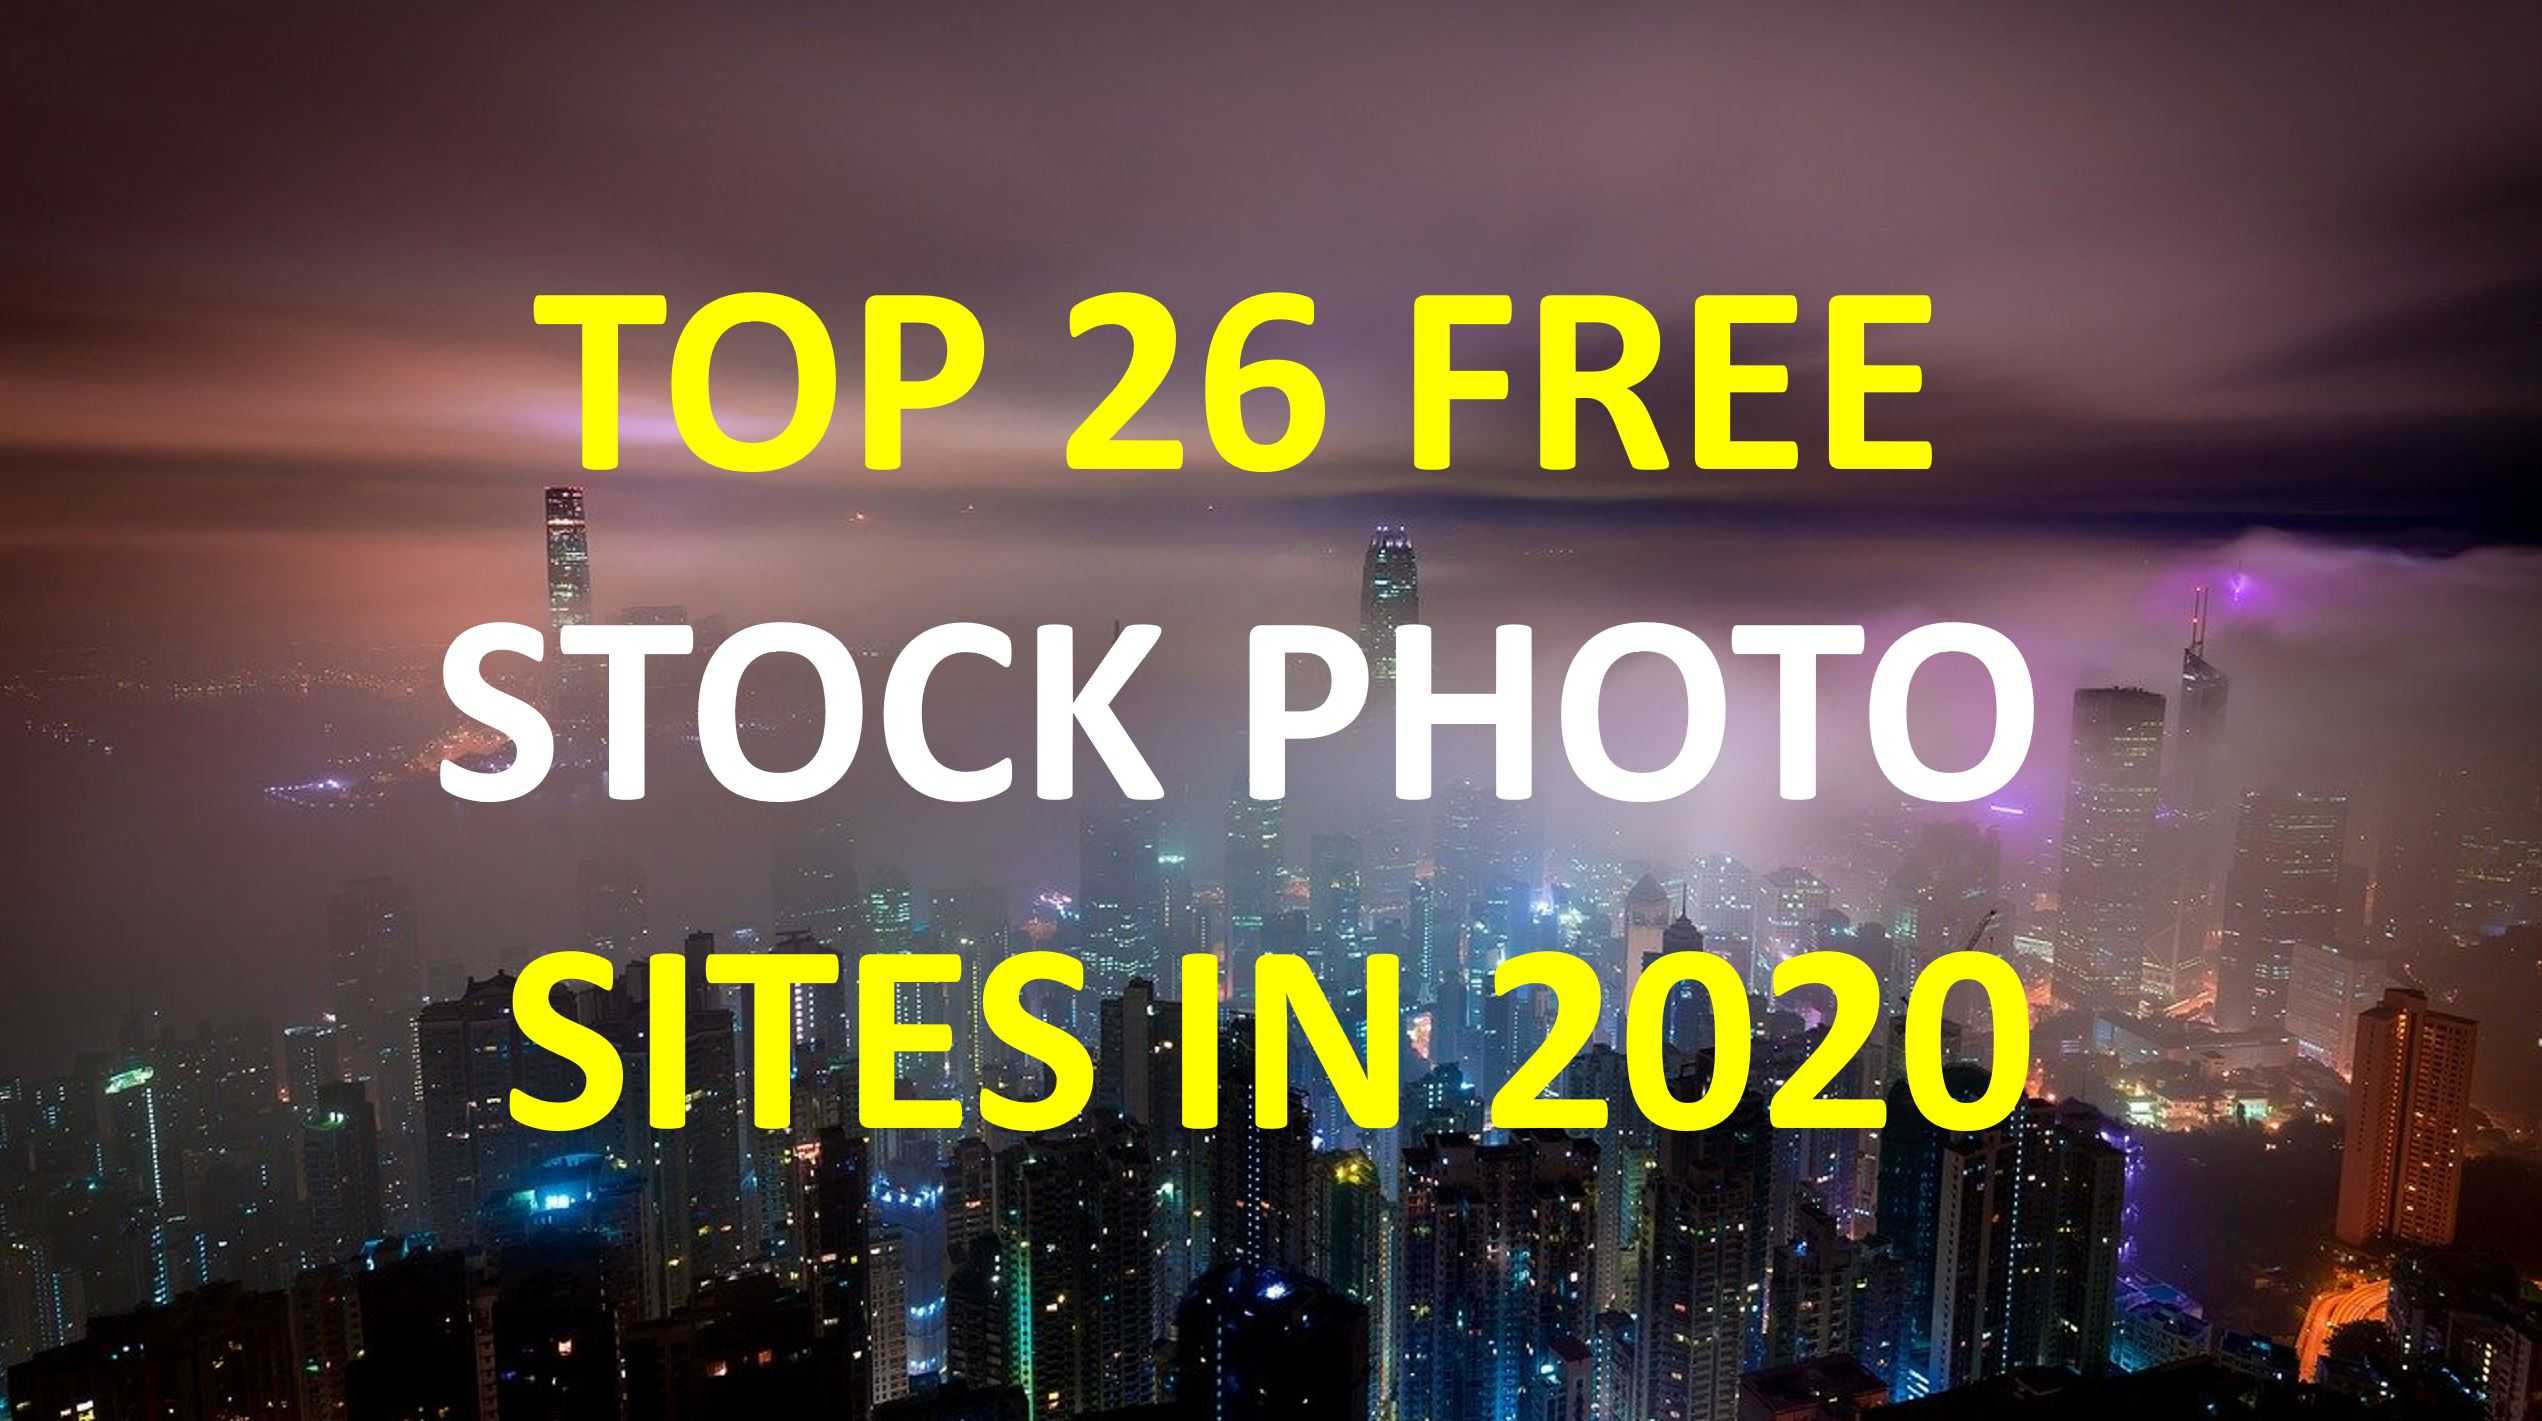 Top 26 Free Stock Photo Sites in 2020